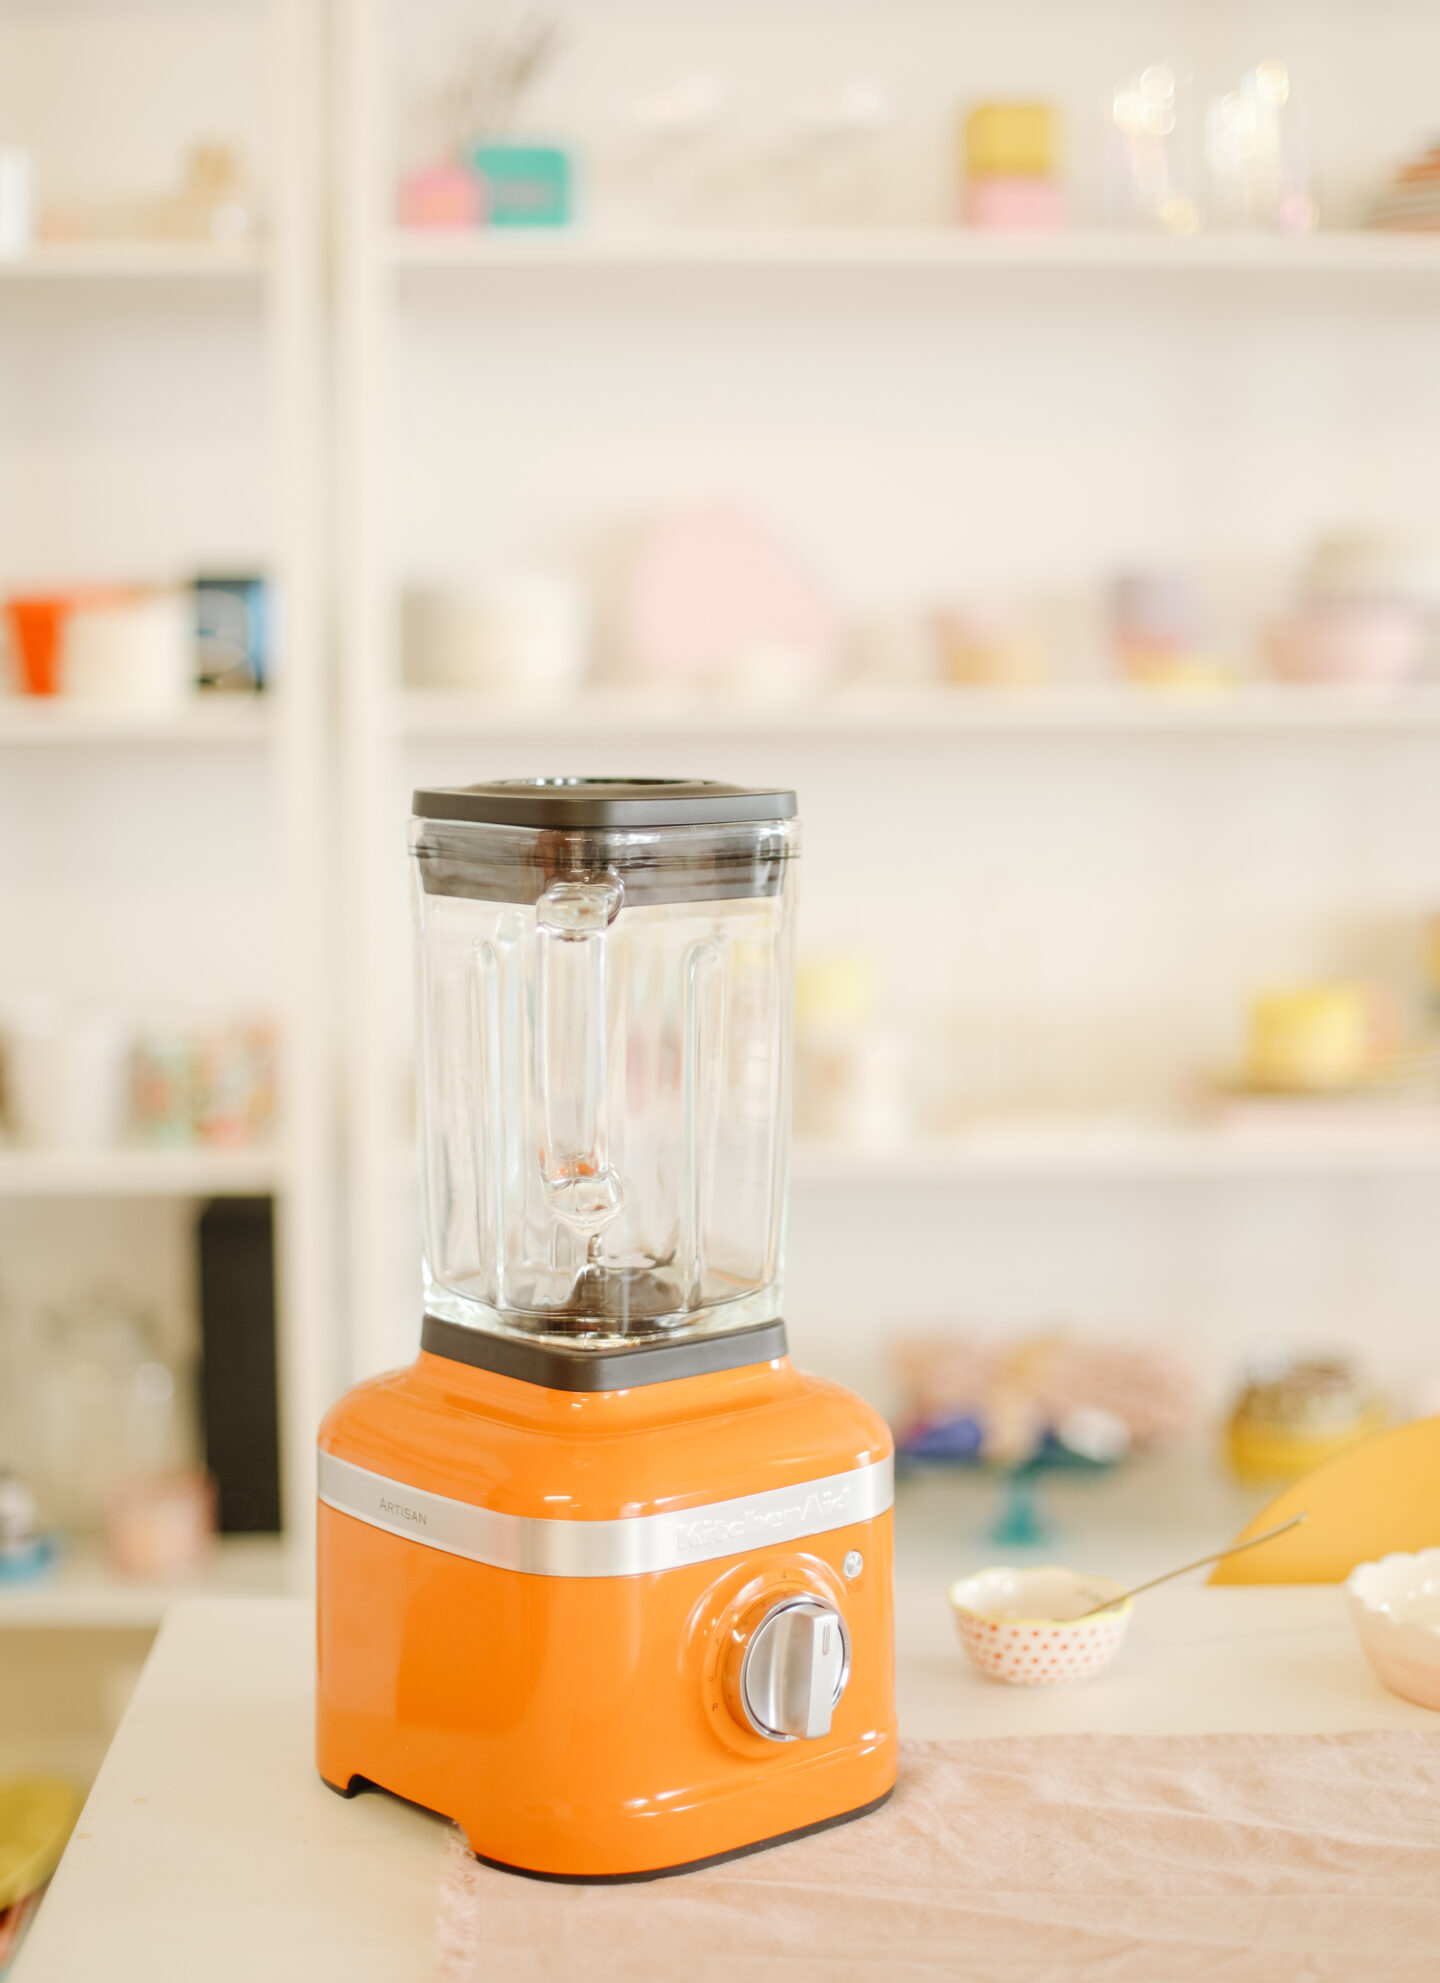 KitchenAid Blender in the colour of the year